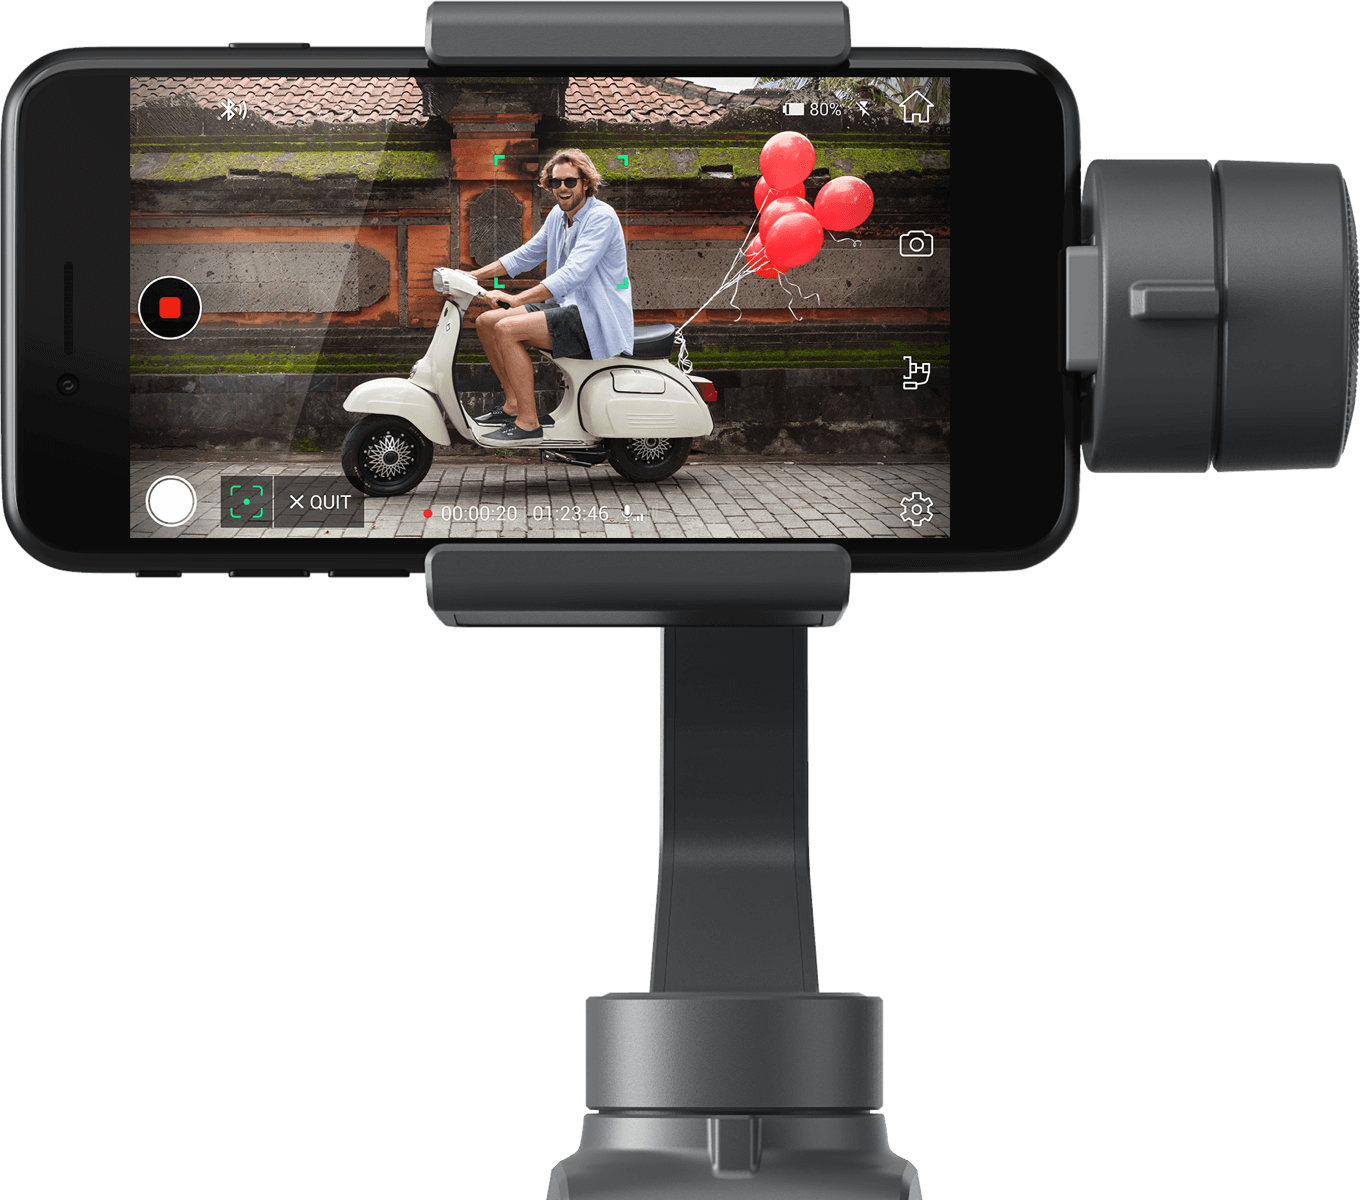 DJI announces its all new, significantly cheaper, Osmo Mobile 2